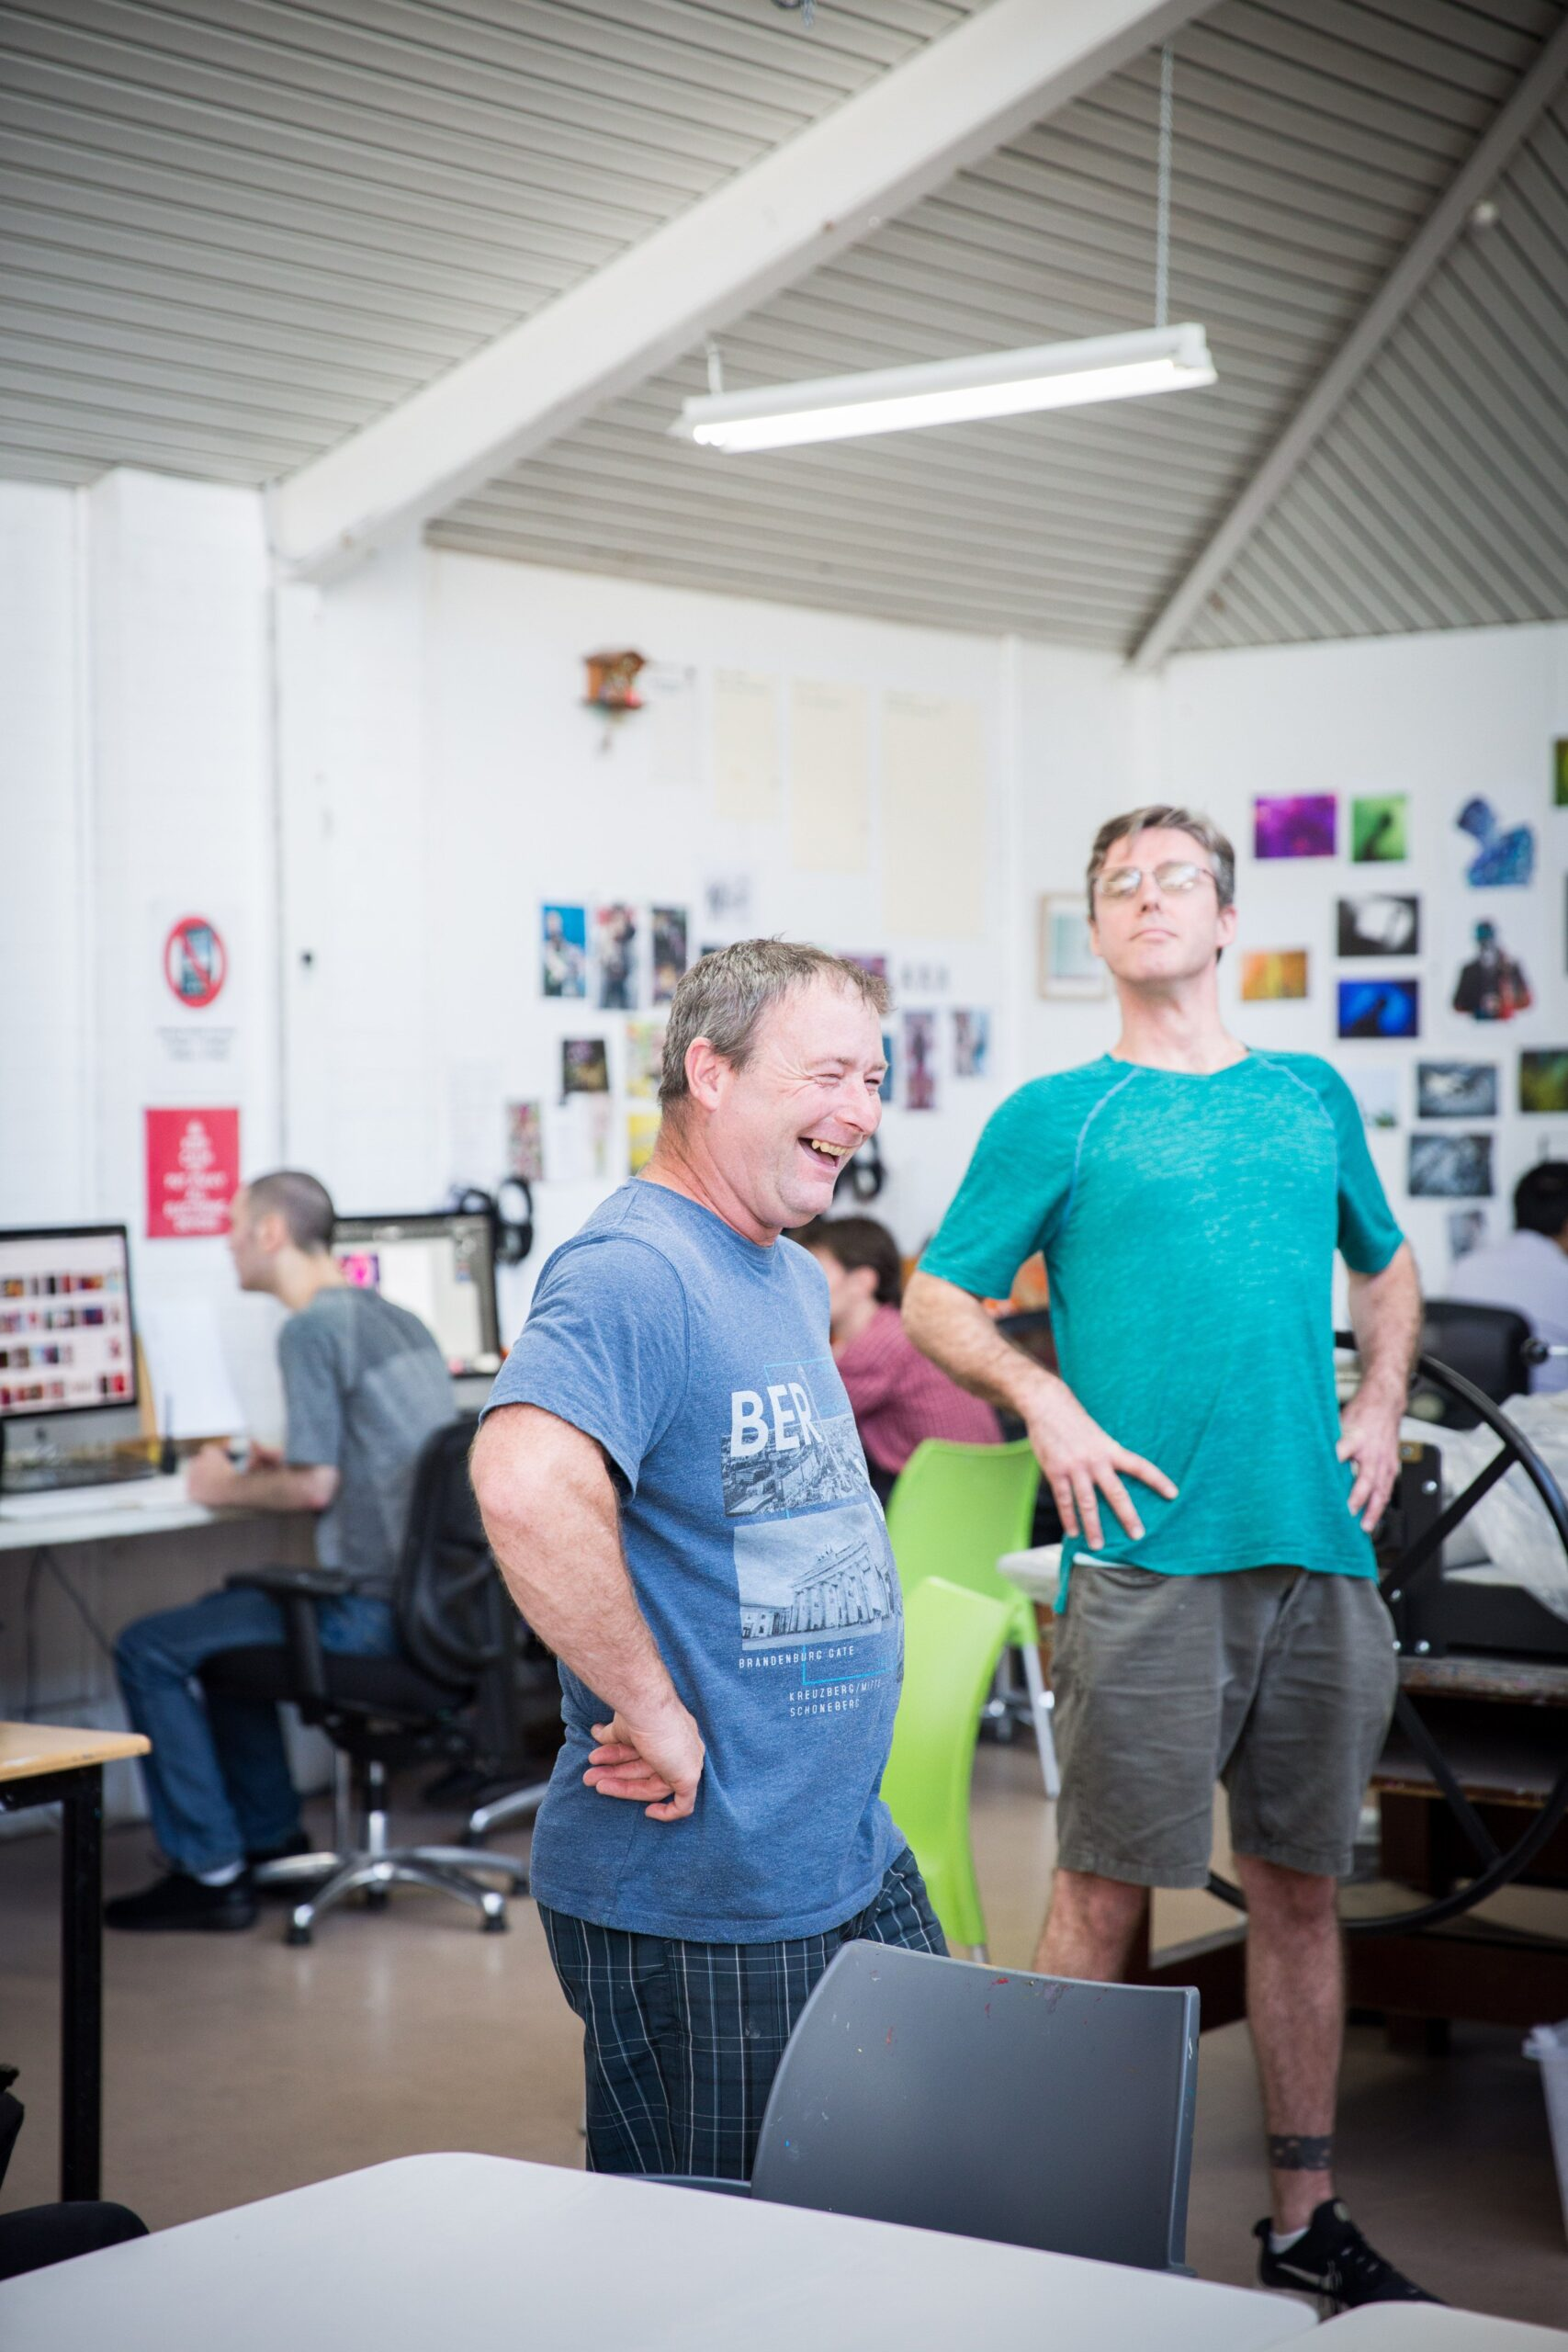 Two middle age men wearing blue shirts laugh together in art studio